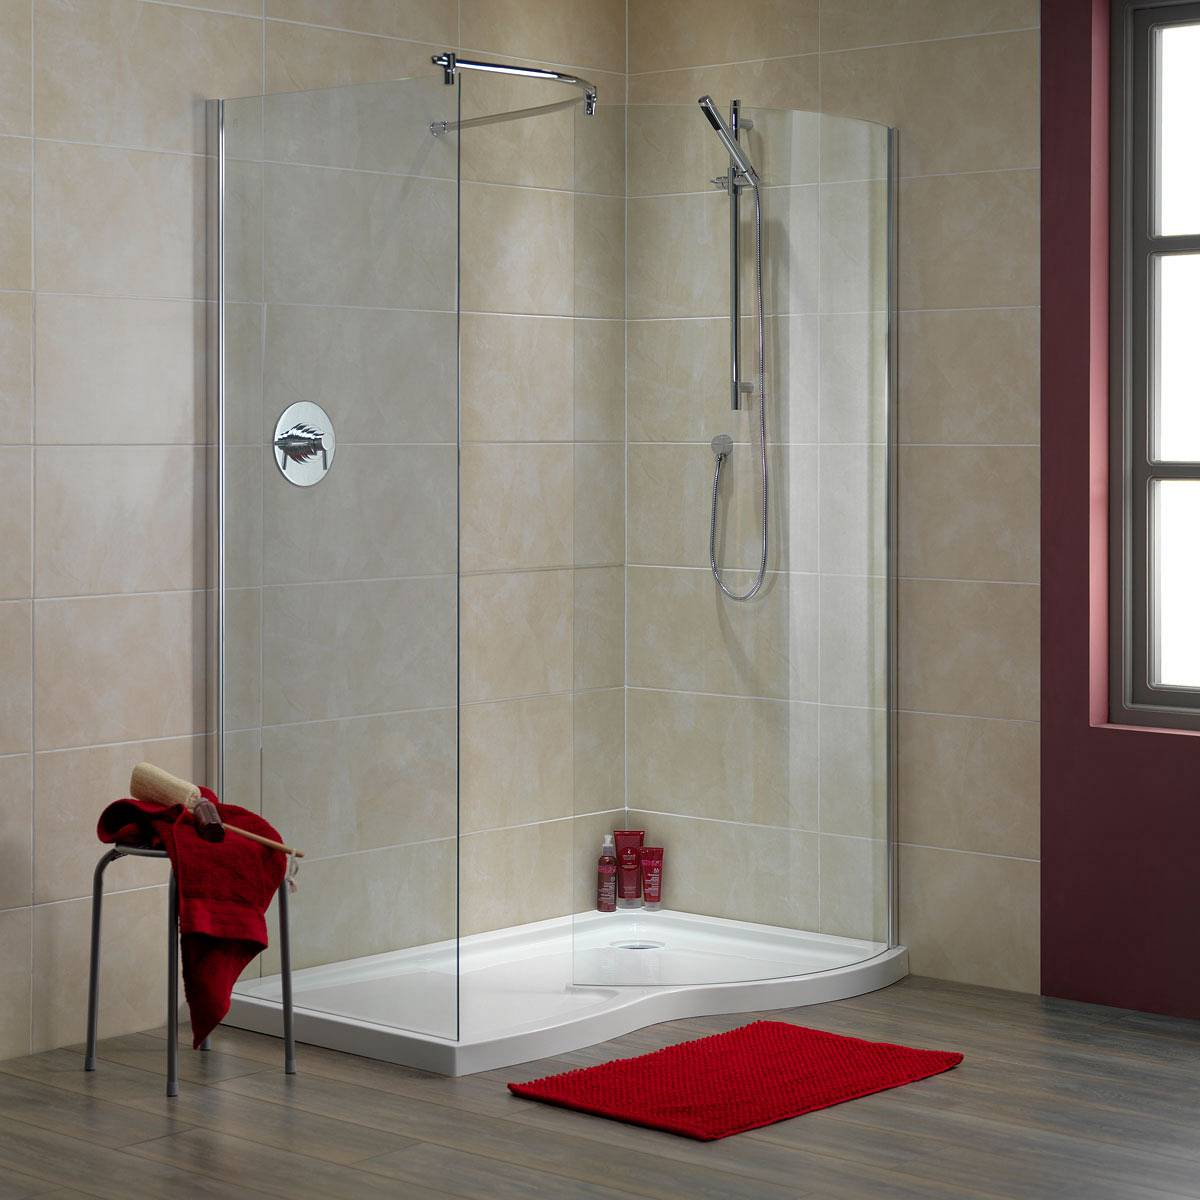 White Bathrooms Nz corniche bath renoir bath riviera bath bianca bath shower over